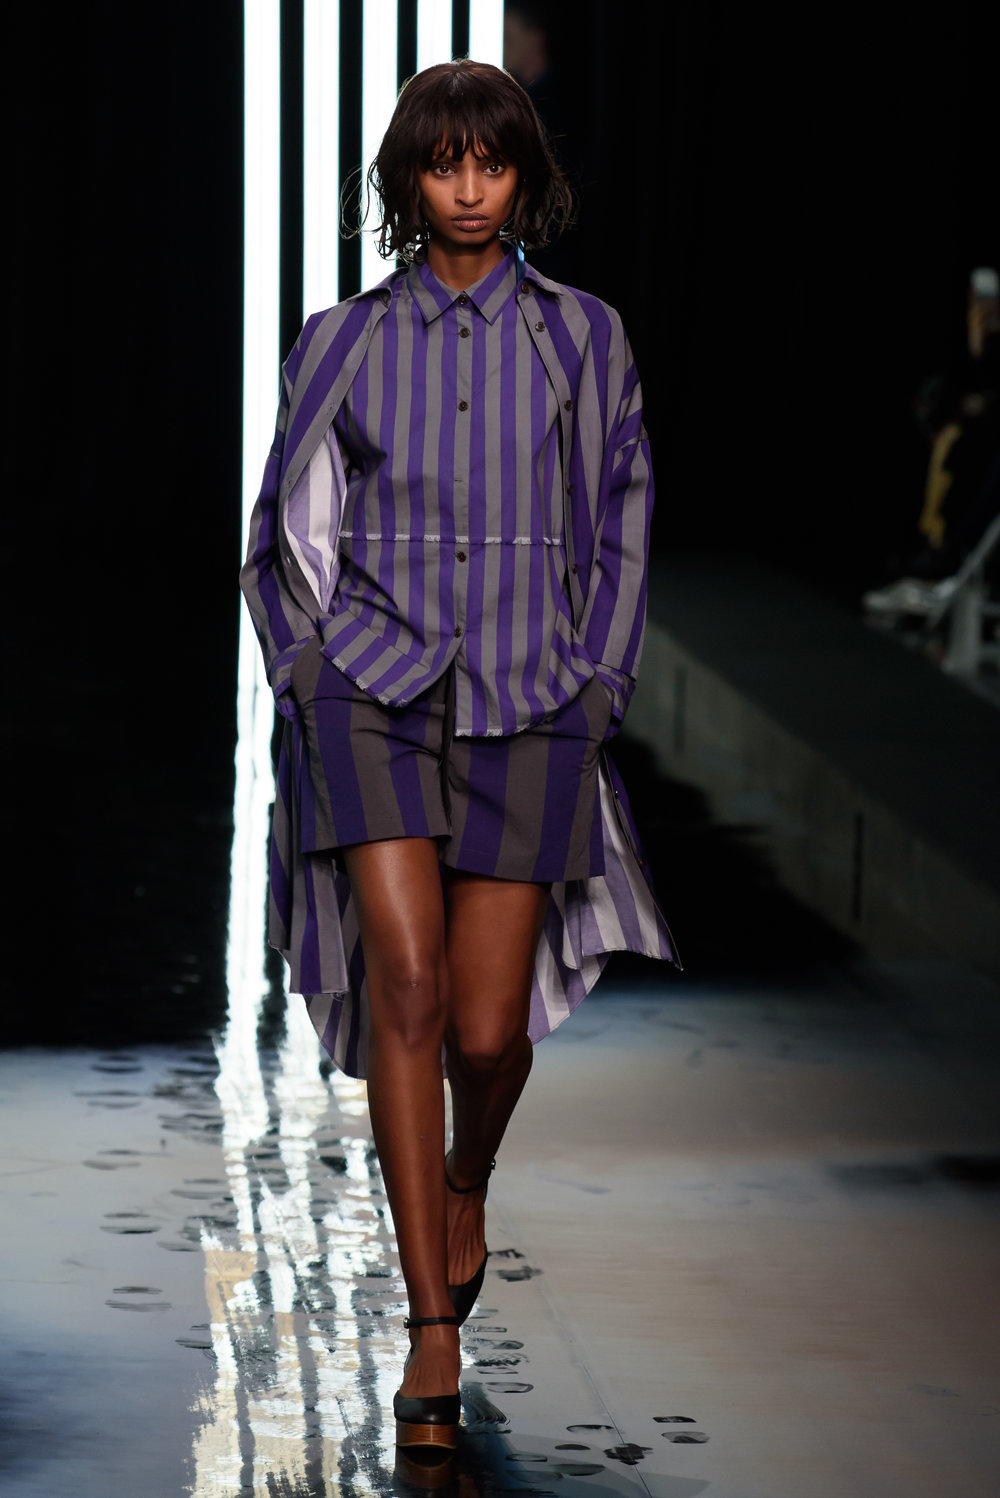 The sporting kind - It was not your father's blue oxford 'office' shirts that made their way down the shiny runway at the HARE Spring 2018 runway show, but for sure this sort of classic, conservative sportswear look was the initial inspiration for the deconstructed, thoroughly modern, pieces. Pinstripes and trench coats, khaki pants and button downs were all there, but all totally rehabbed and reformed. The overall effect was both inventive, and sophisticated in execution, and showed HARE to be a major force to watch in future seasons.